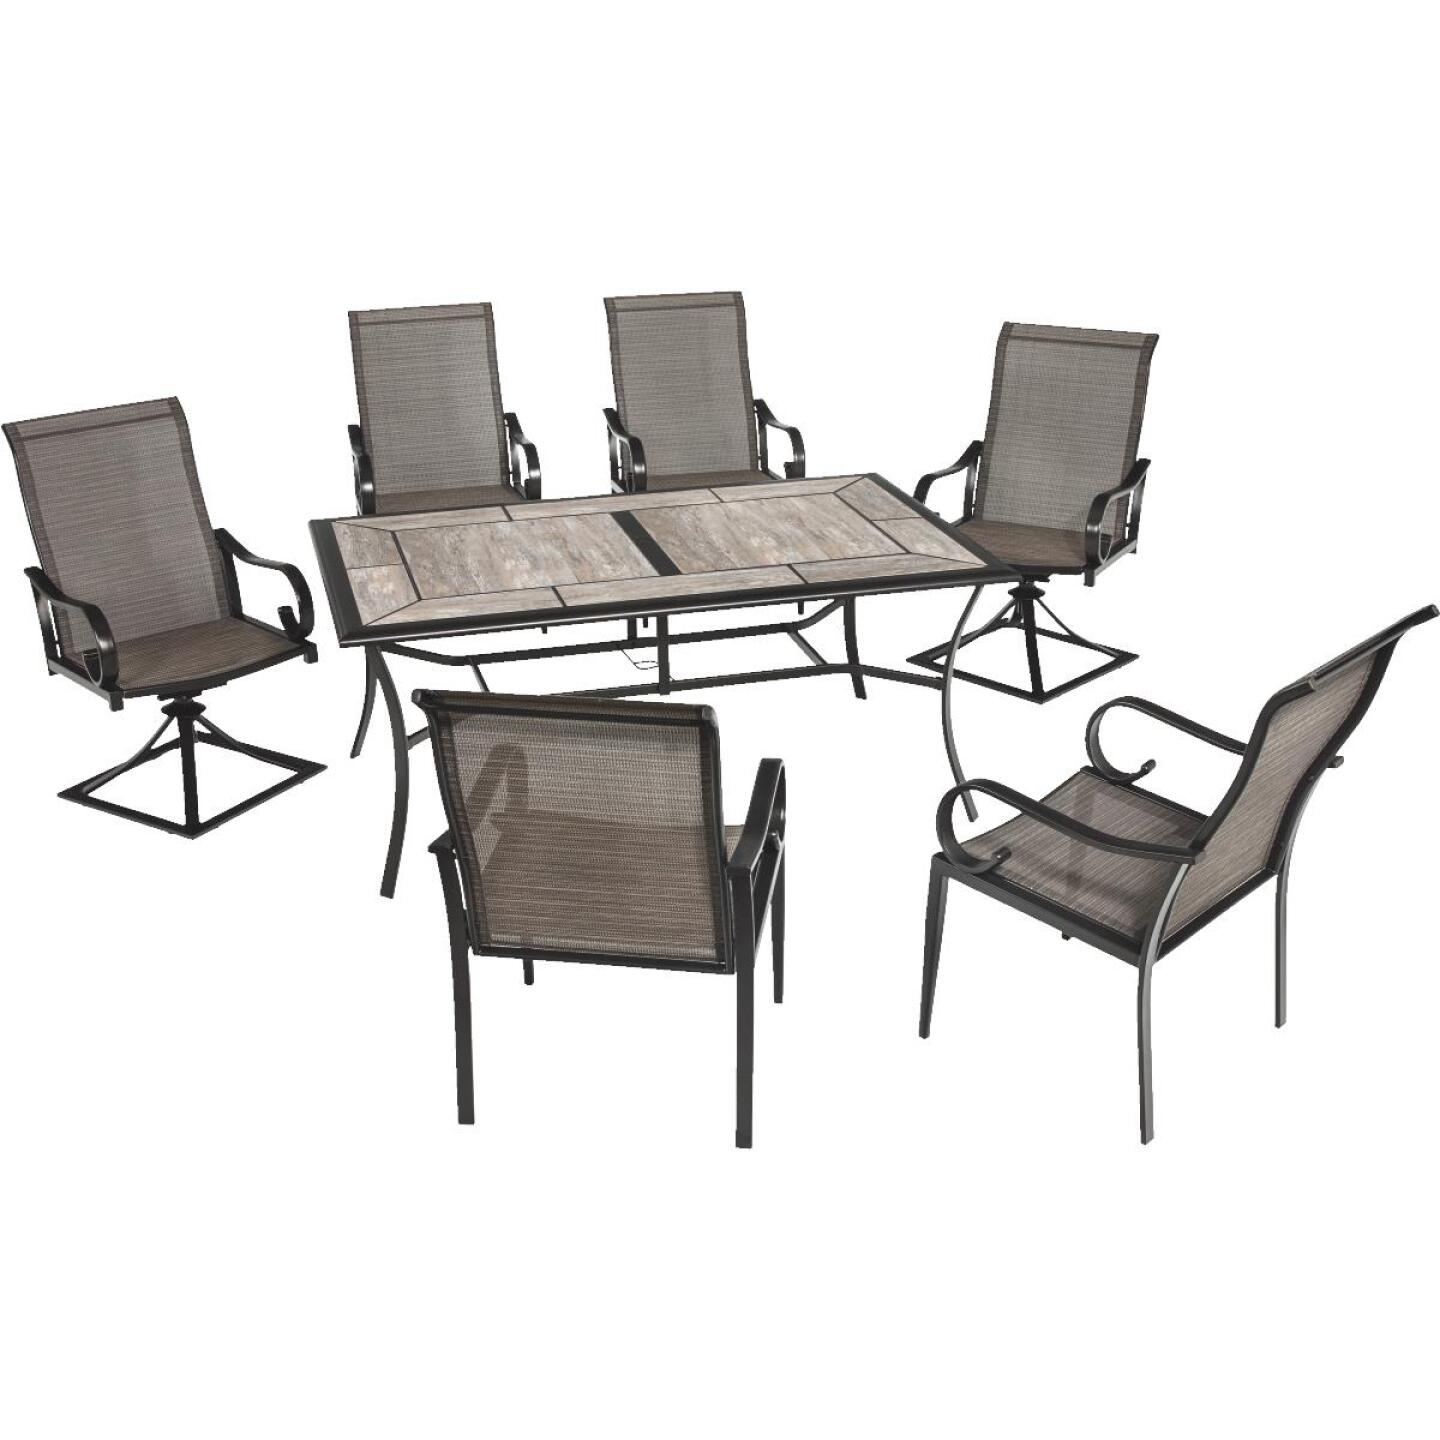 Outdoor Expressions Berkshire 7-Piece Dining Set Image 295